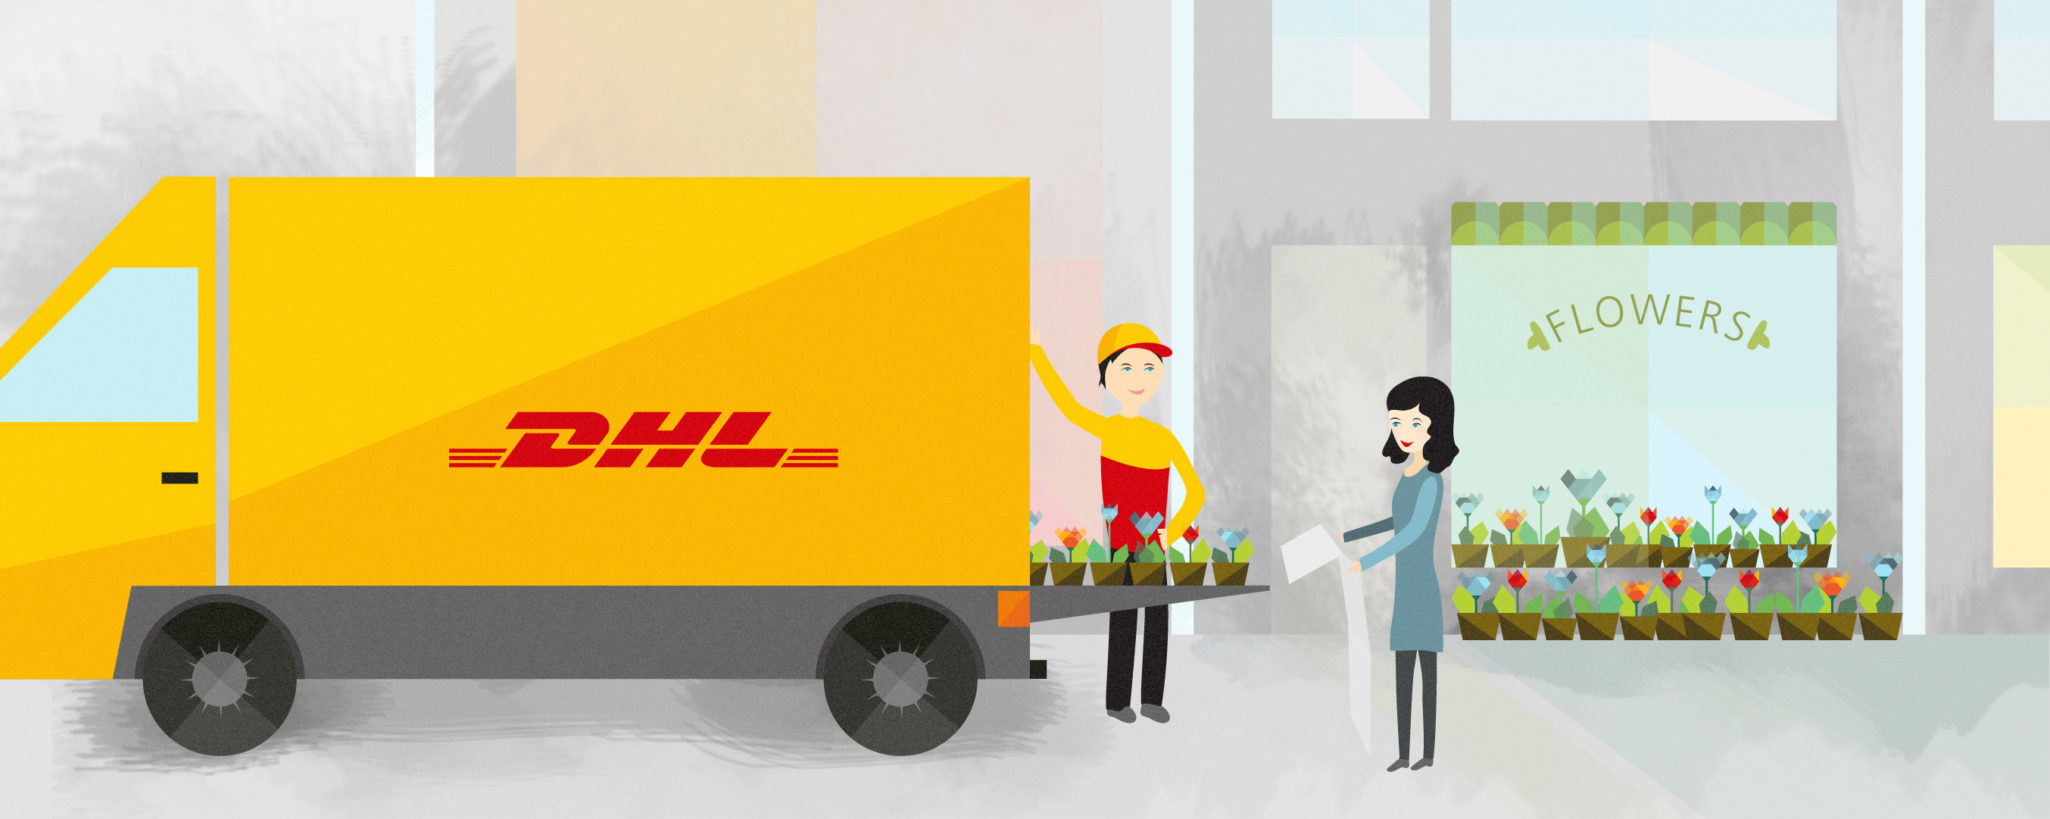 Styleframe illustration for DHL animation: Delivery + flowershop